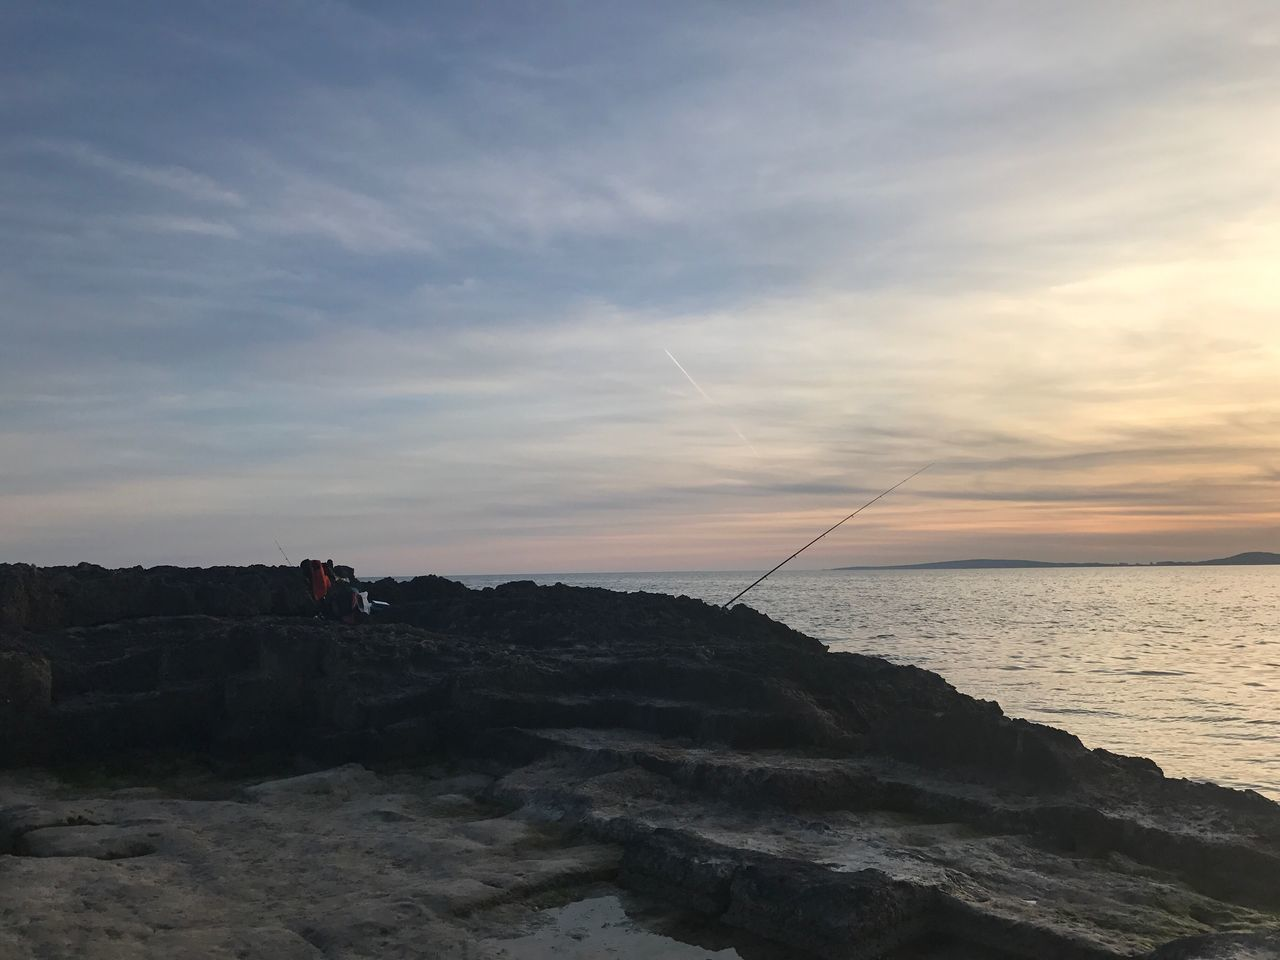 sky, sea, cloud - sky, water, beauty in nature, scenics - nature, rock, rock - object, solid, tranquility, sunset, tranquil scene, nature, horizon, horizon over water, non-urban scene, land, beach, outdoors